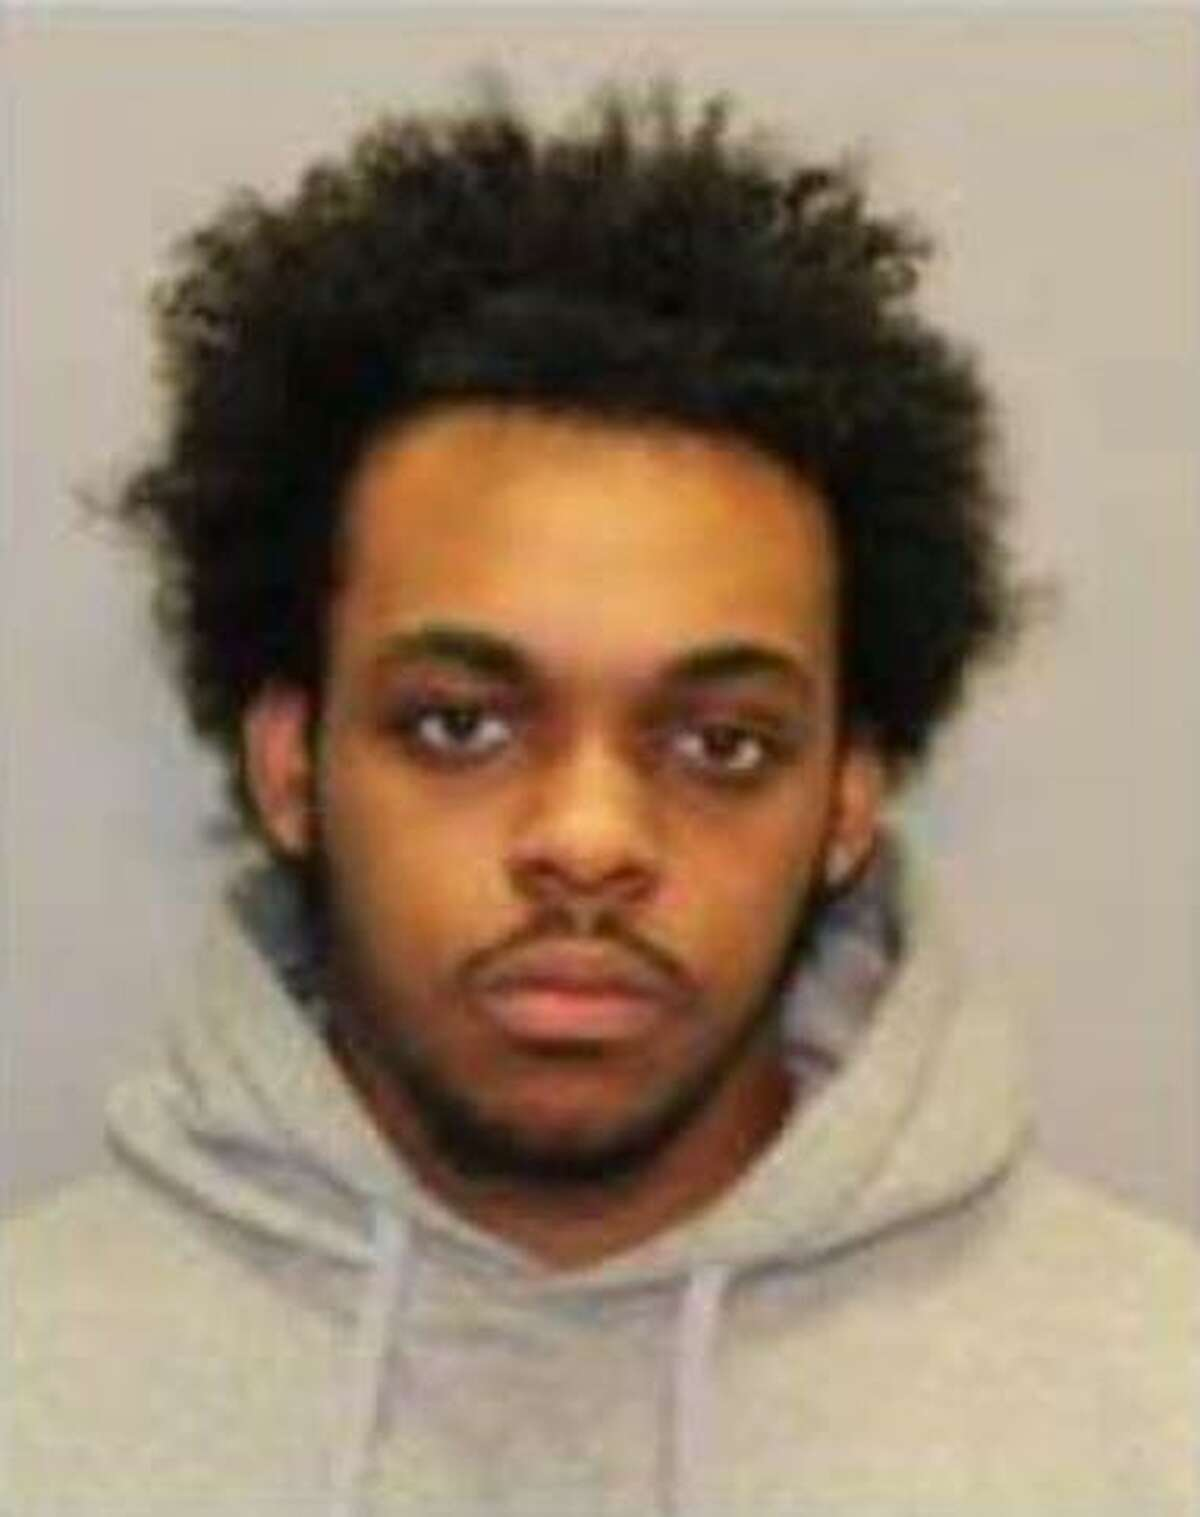 Matthew O'Banner, 20, of Middletown was arrested earlier this month. He was charged with murder and other charges related to the homicide of Tylon Hardy.